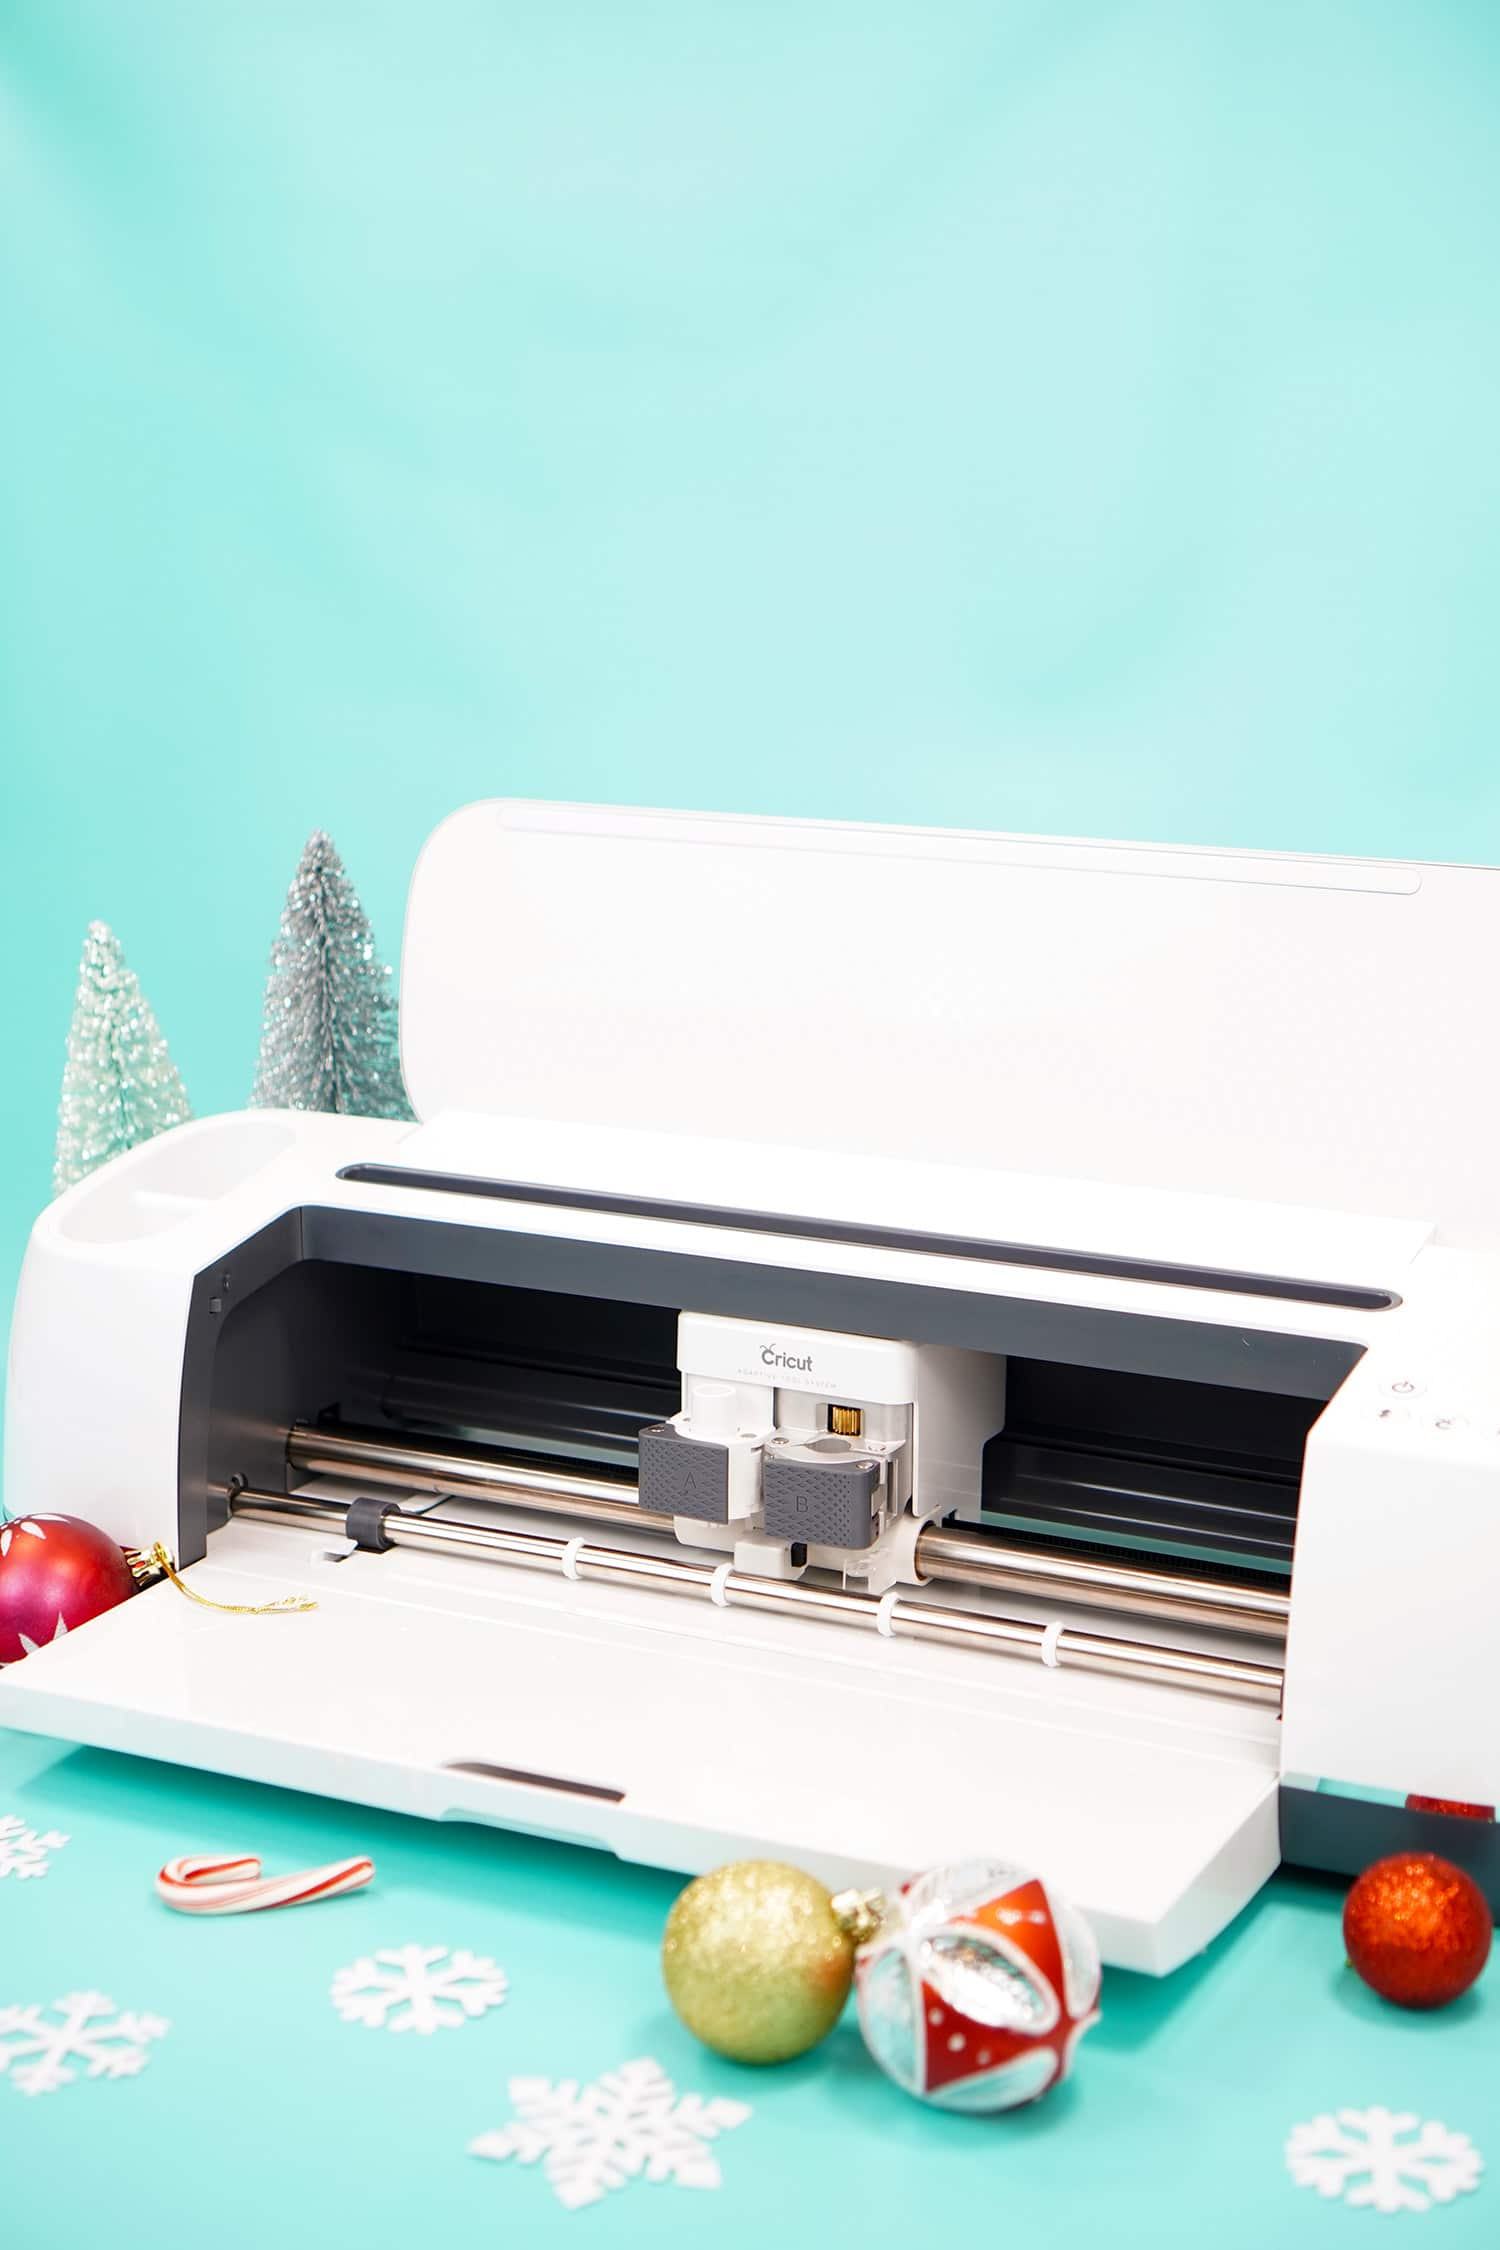 Cricut Maker machine on aqua background with white snowflakes and red and gold ornaments